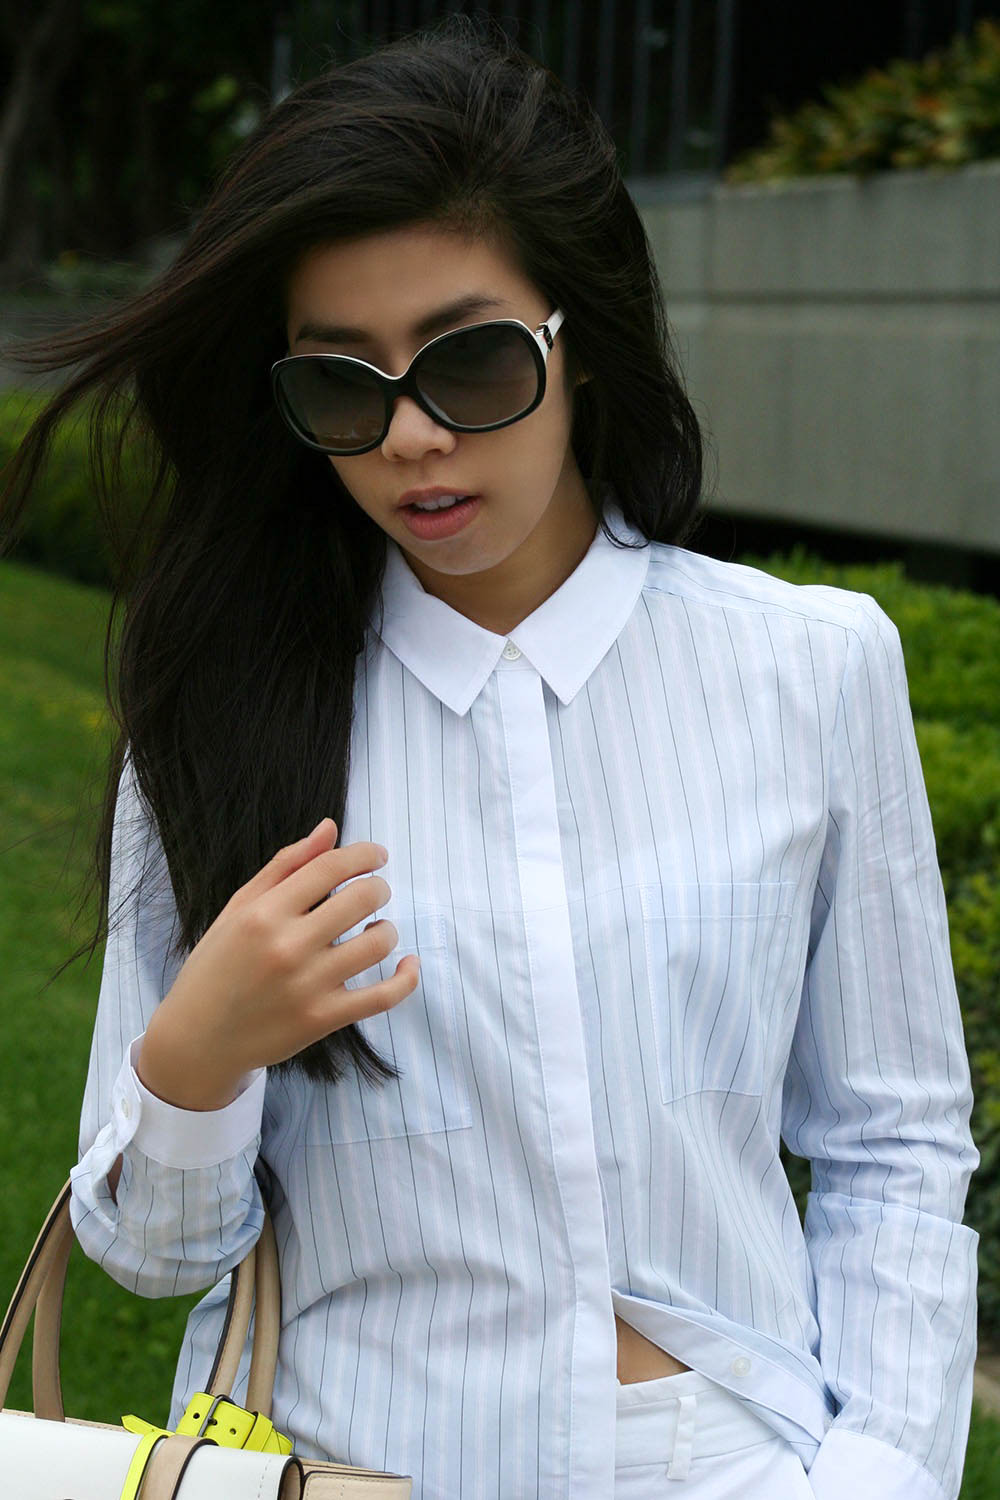 adrienne Nguyen_Invictus_la fashion blogger_california fashion blog_how to wear a shirt dress